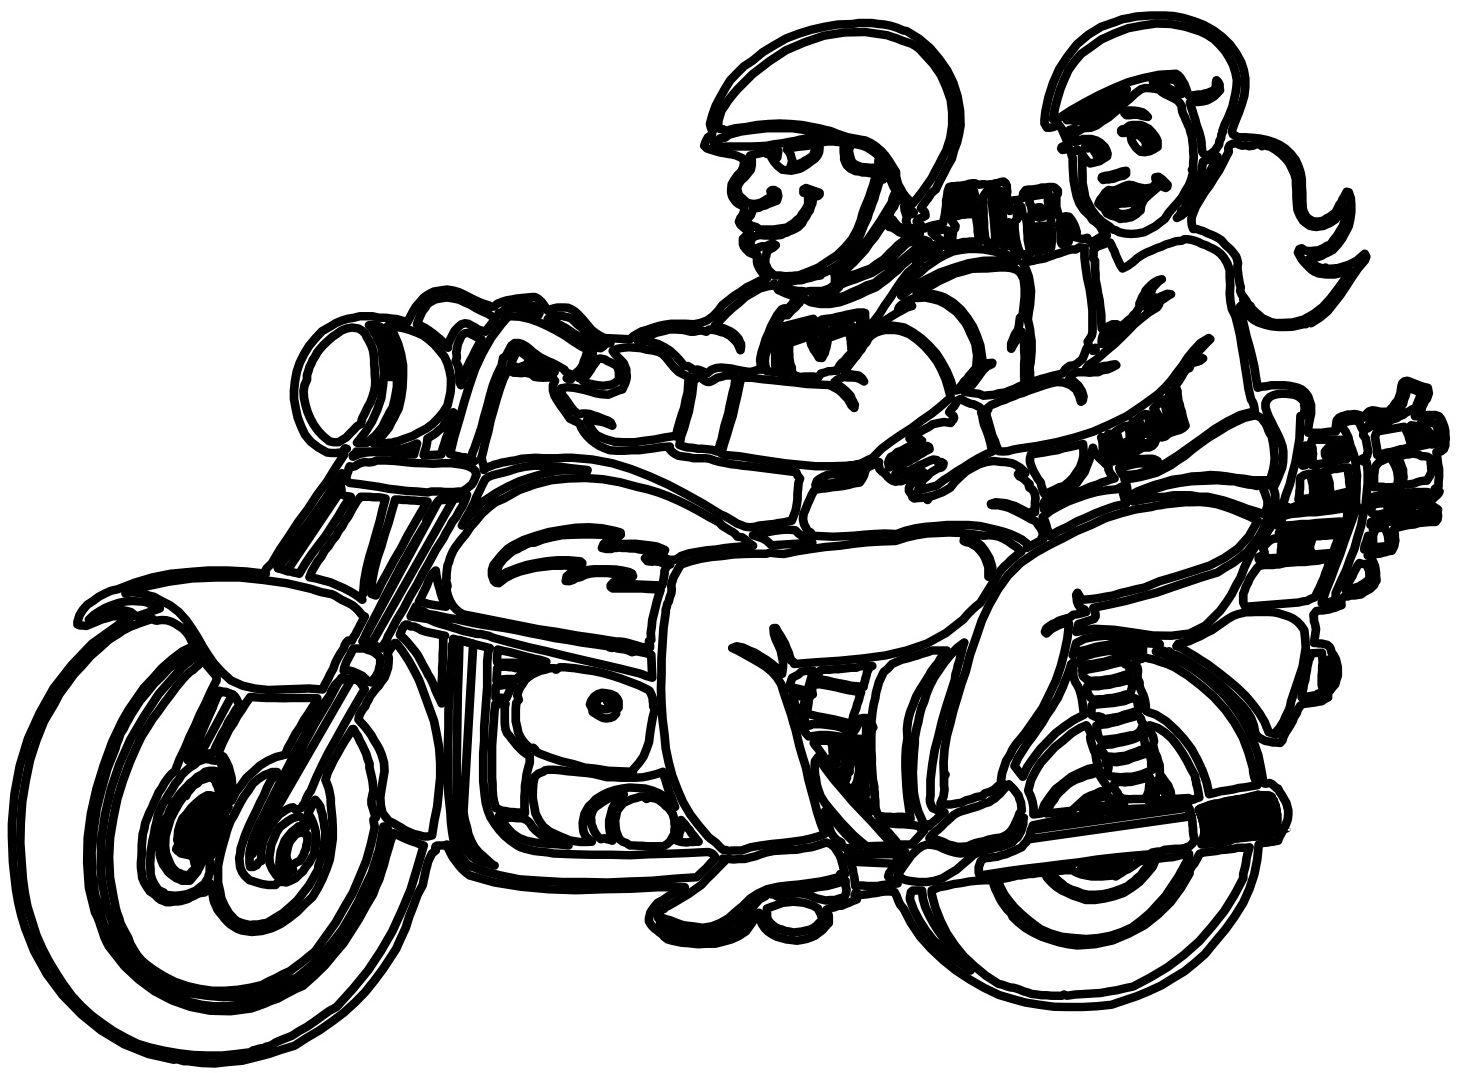 Line Art Motorcycle : Motorcycle line drawing clipart best